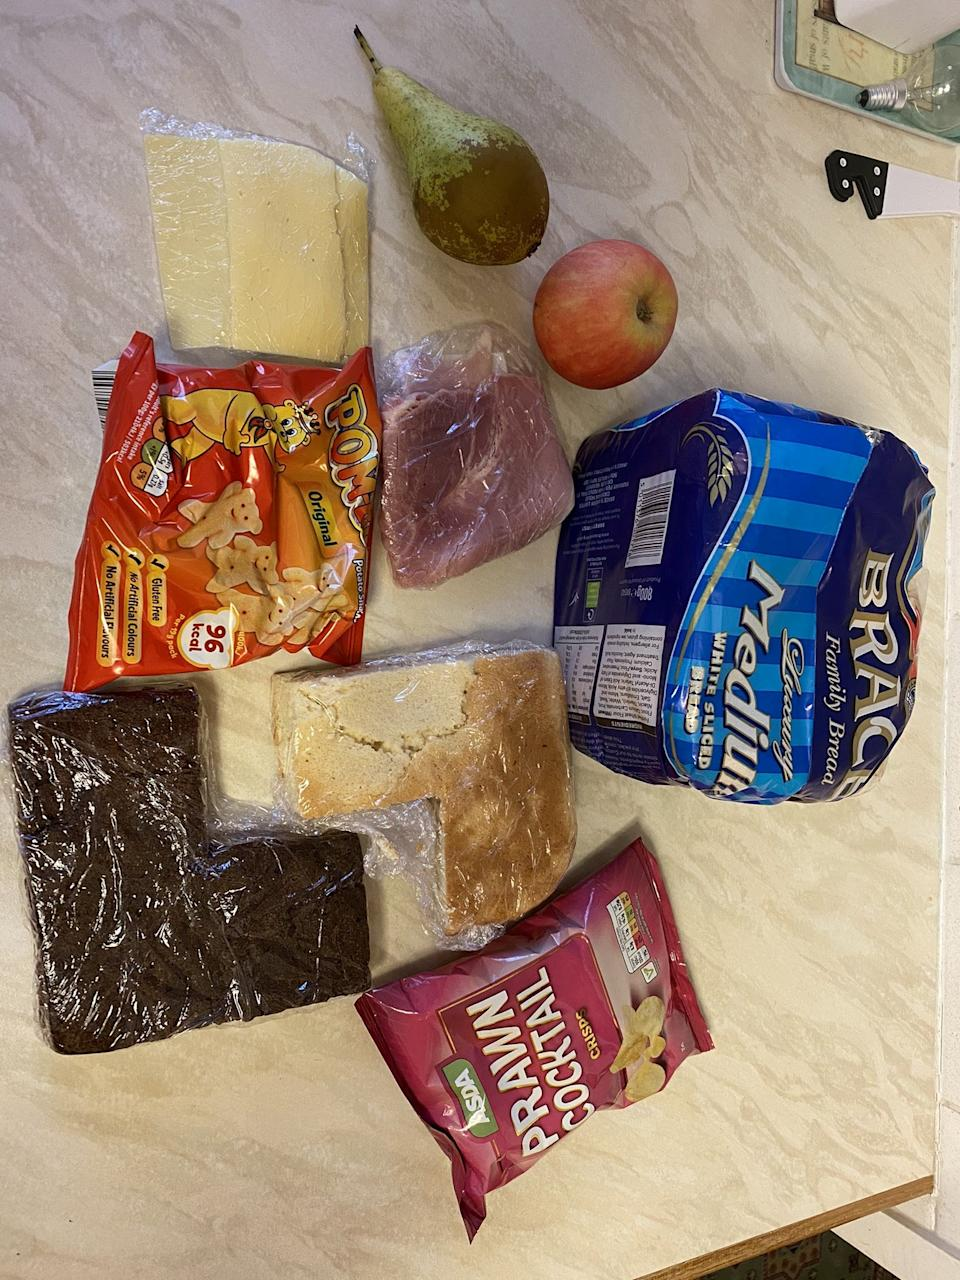 The food package Simon Young received for his 11-year-old daughter Lola's lunches to last her a week. (SWNS)